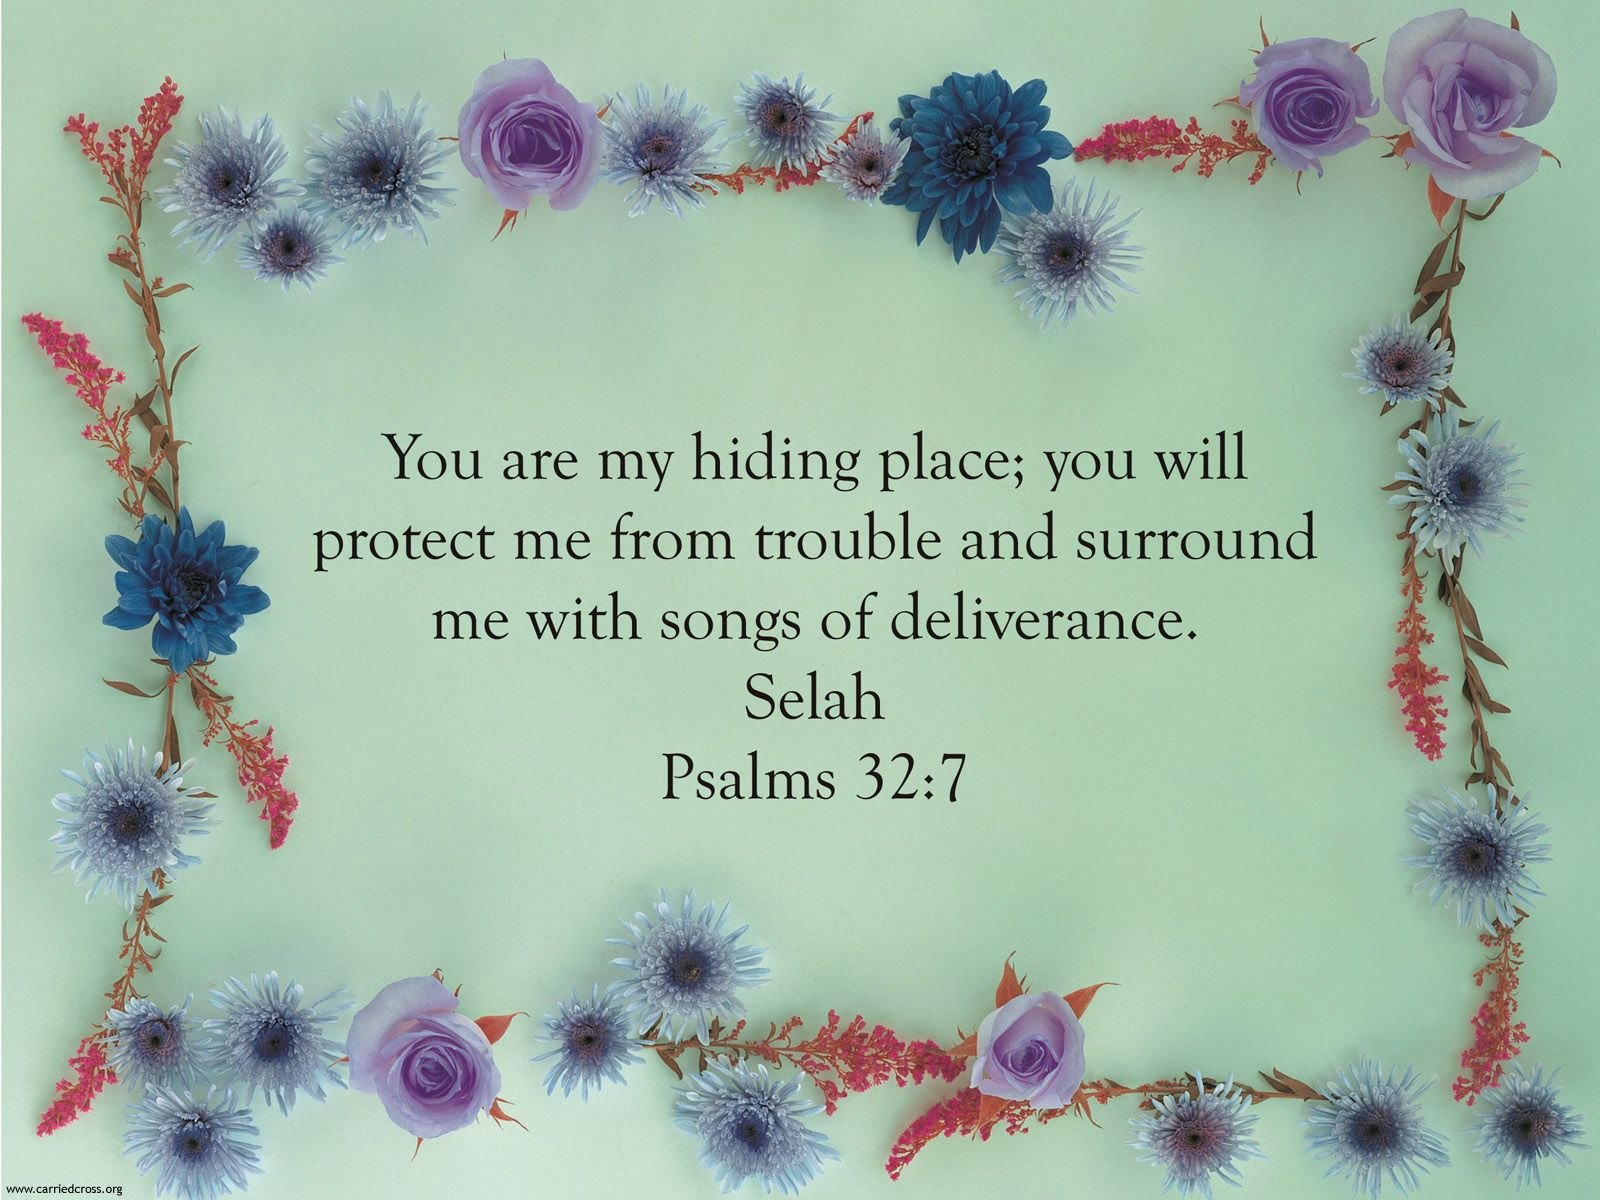 Psalm 32:7 Wallpaper - Christian Wallpapers and Backgrounds